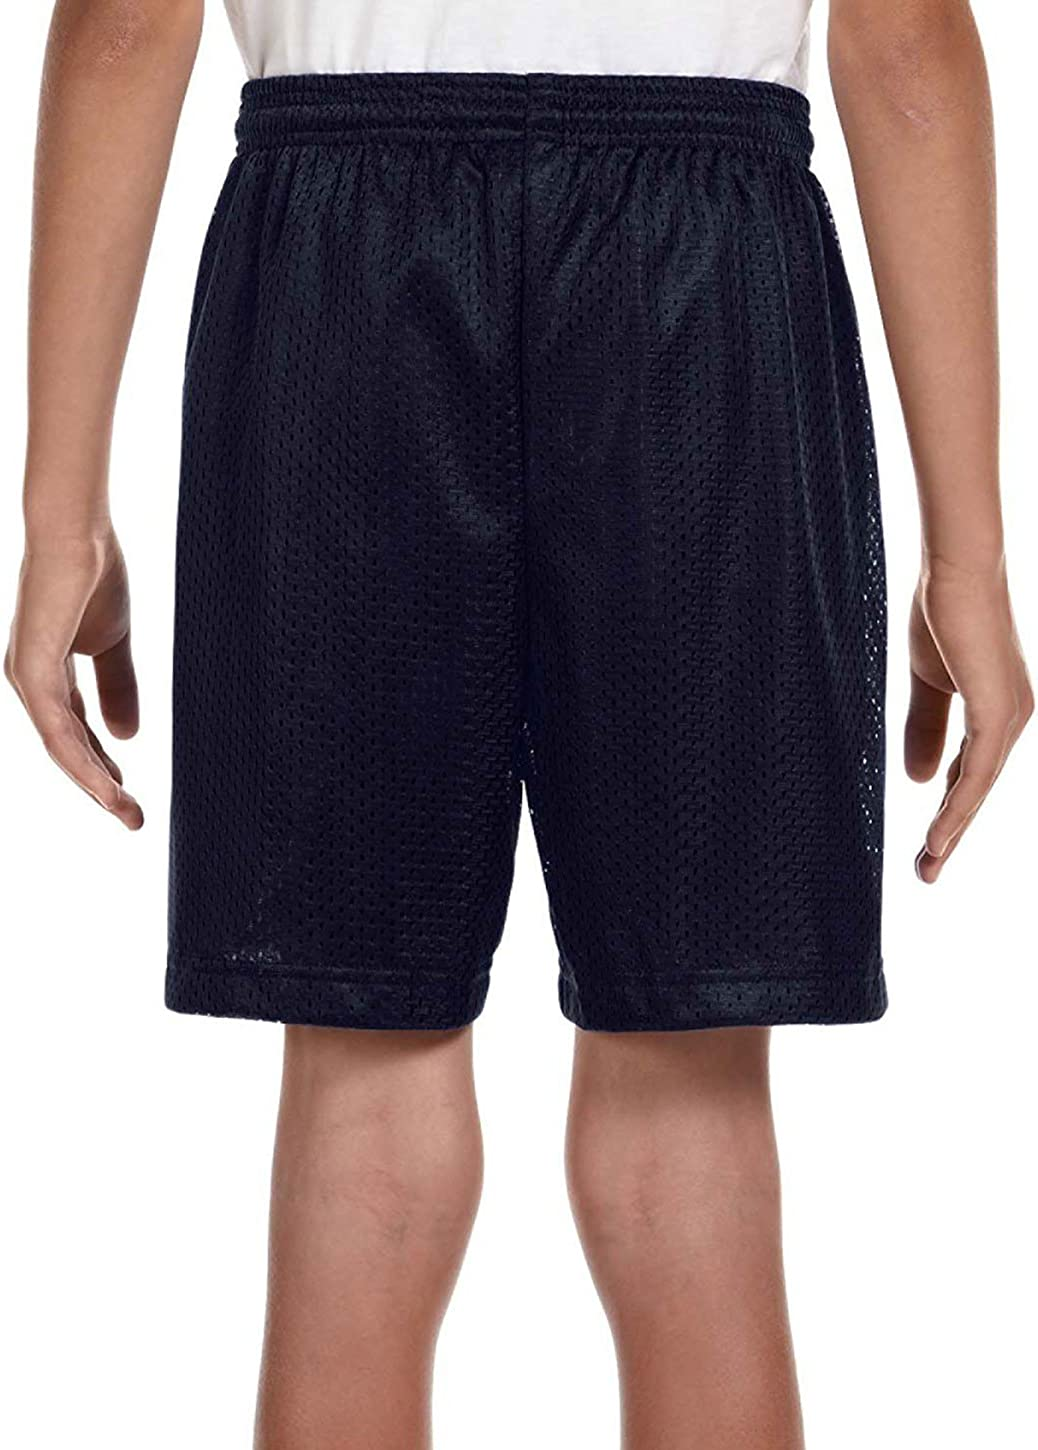 A4 NB5301 Youth Tricot-Lined 6 Mesh Shorts